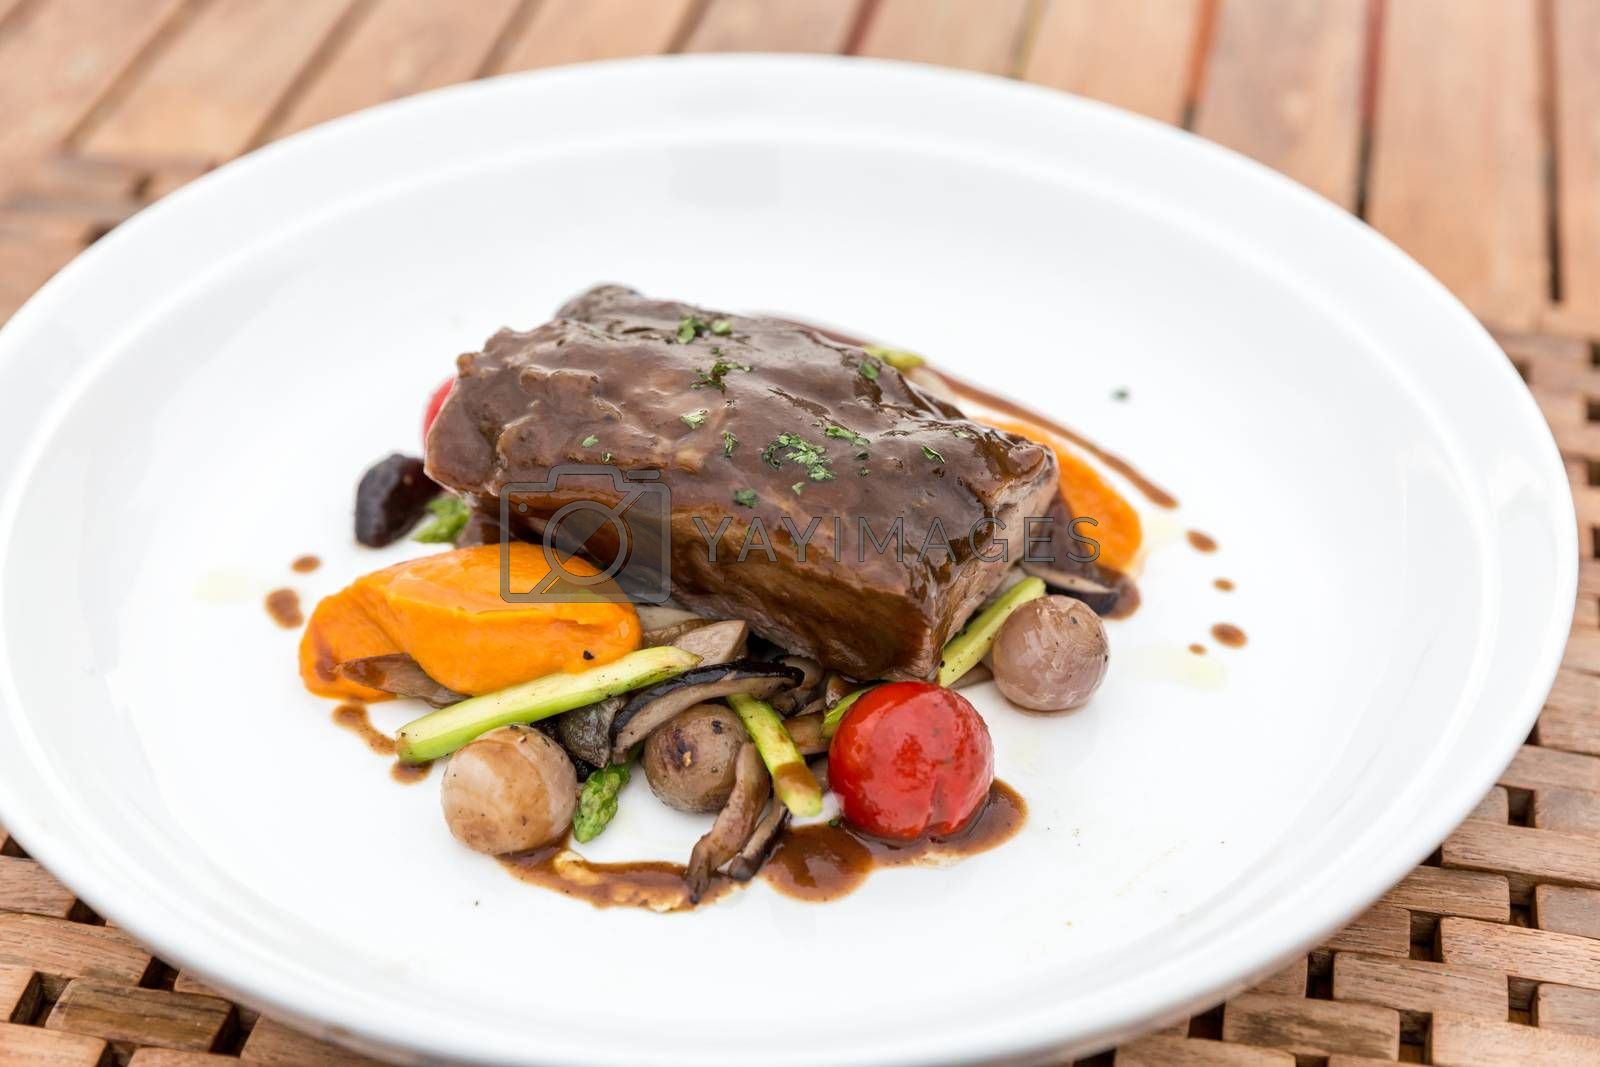 Slow cook roasted Rib with grilled vegetable